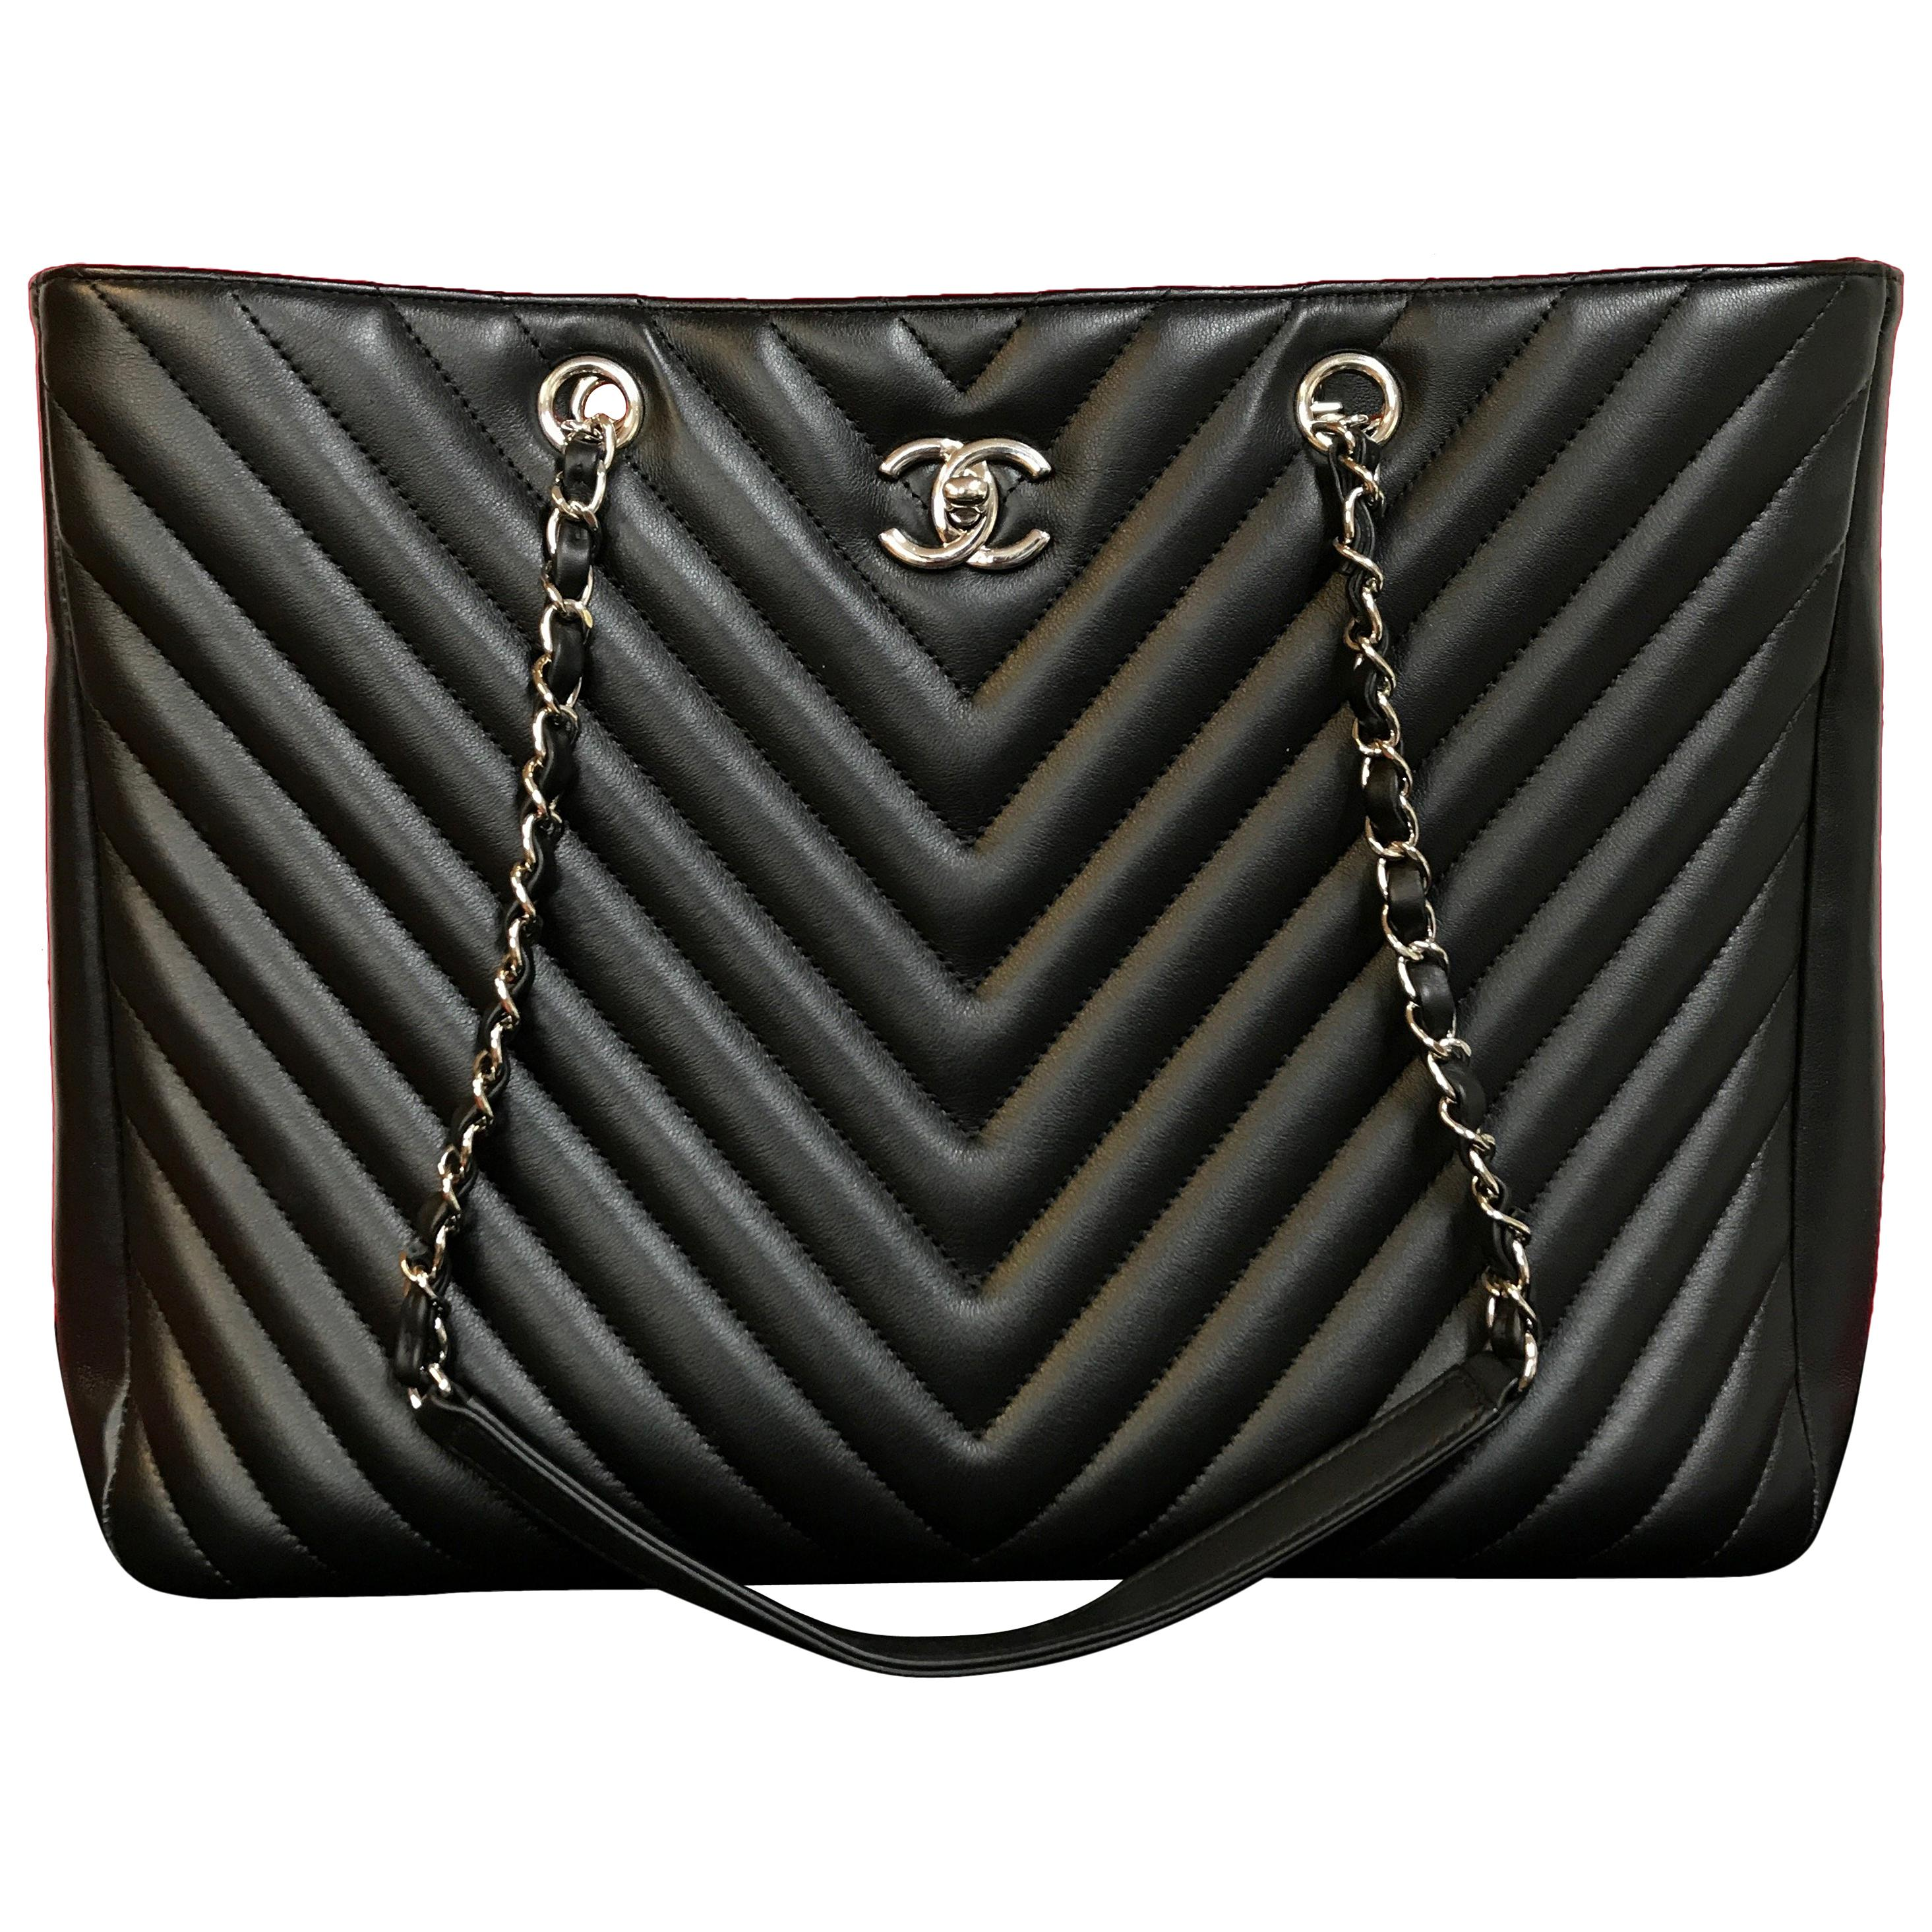 c98092e1f4ca Chanel Quilted Patent Leather Reissue Classic Flap Bag For Sale at 1stdibs